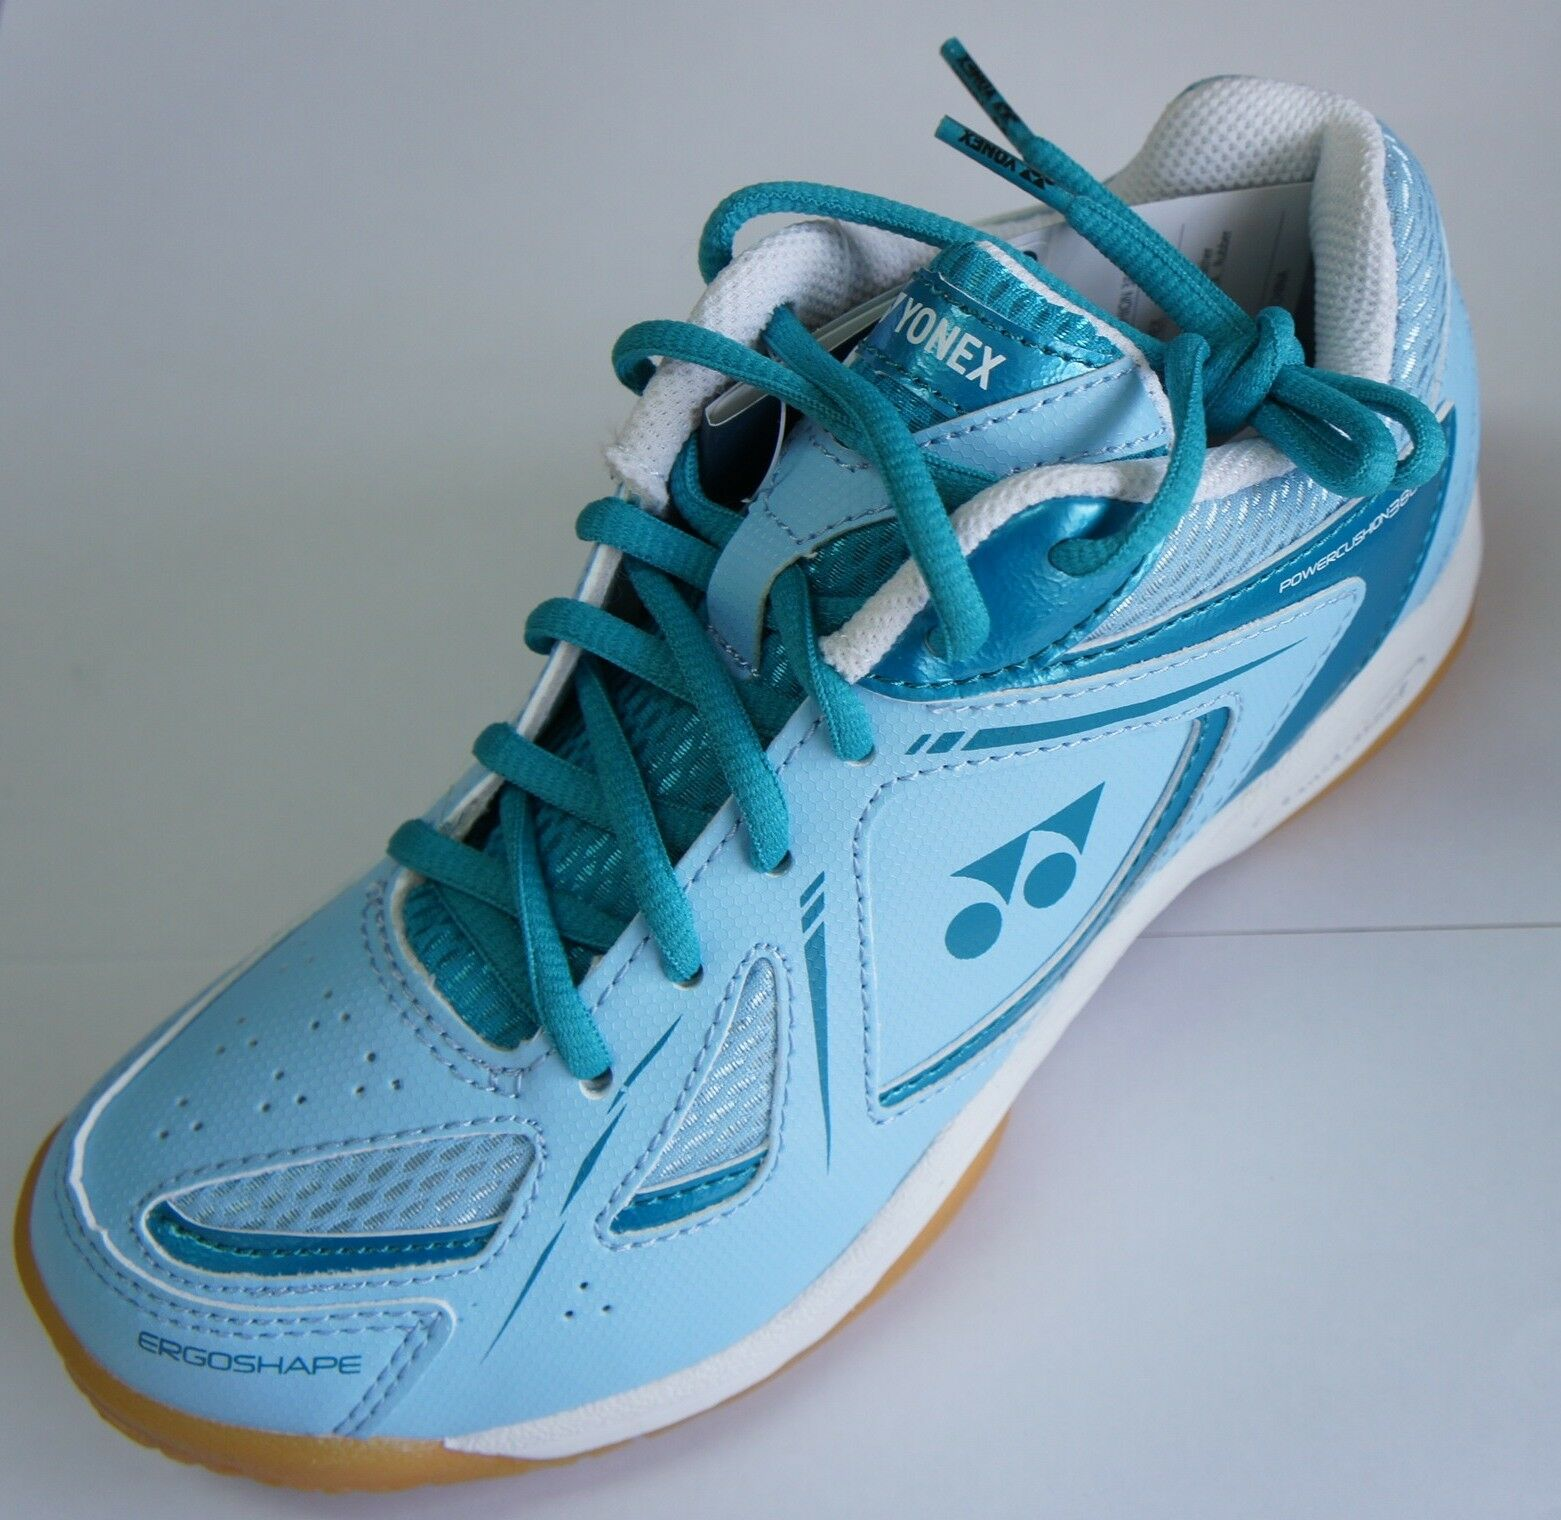 Yonex Power Cushion 380 Junior schuhe SHB380JREX schuhe, Mint